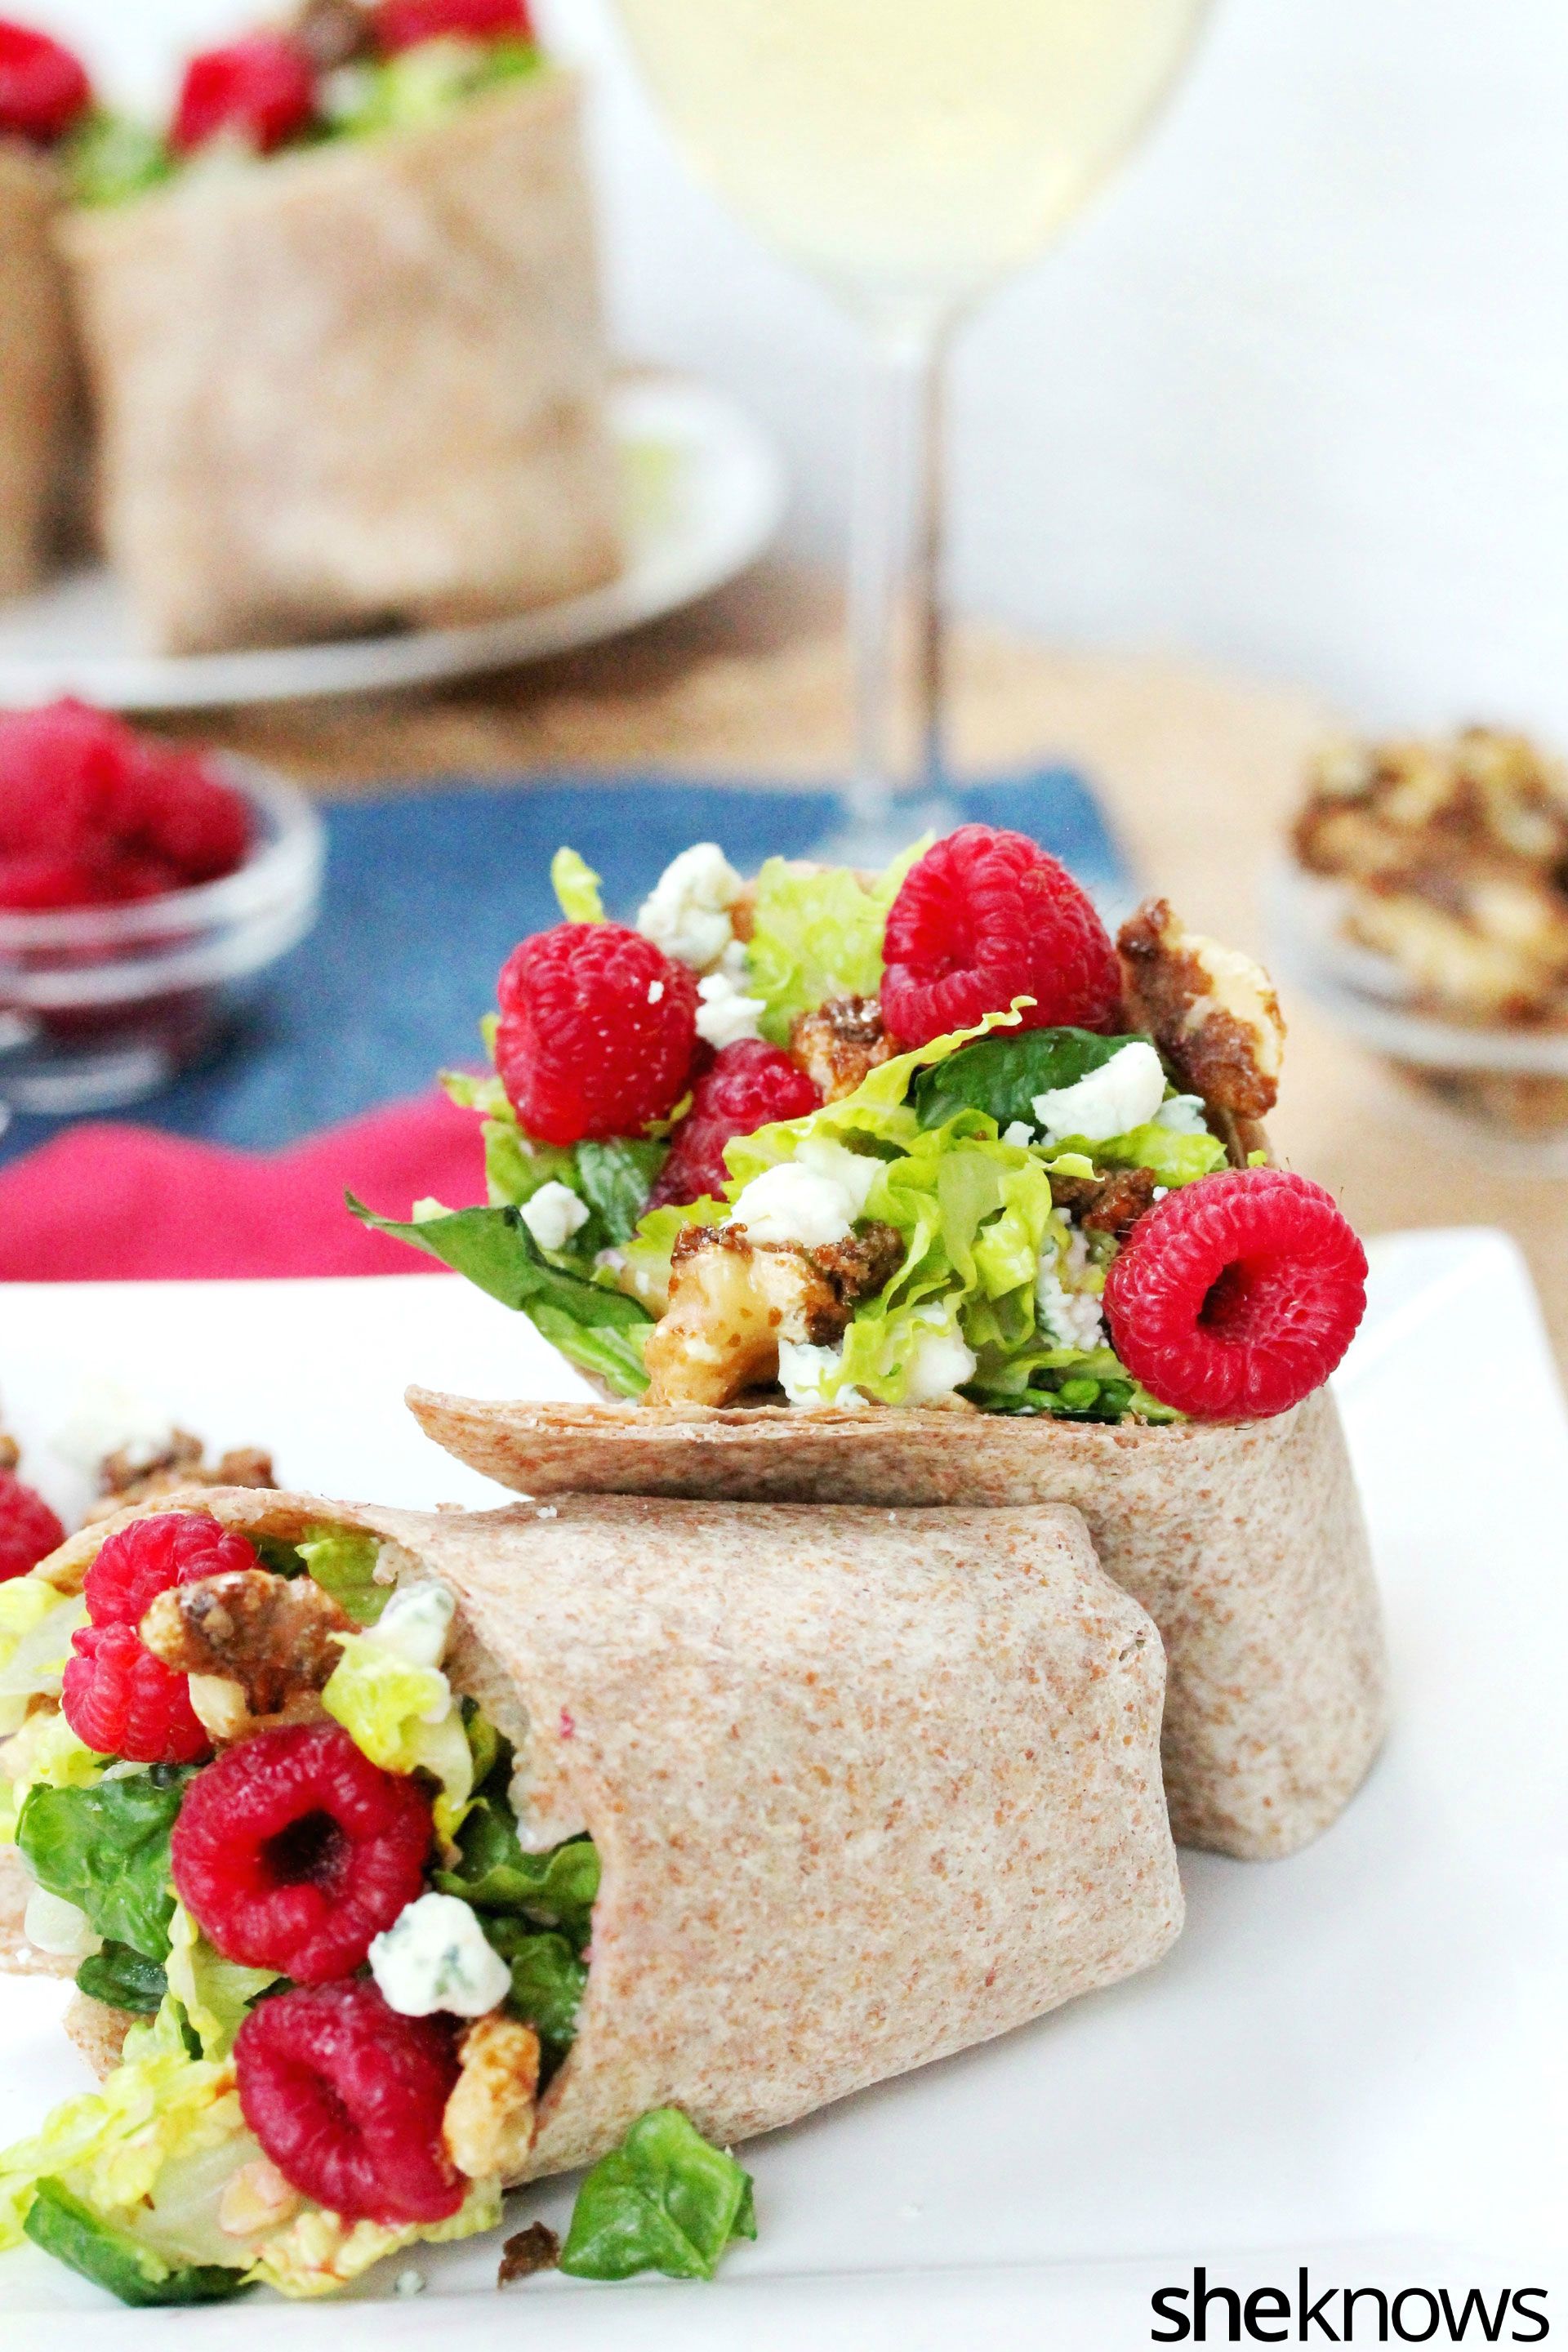 Raspberry spinach wrap on plate